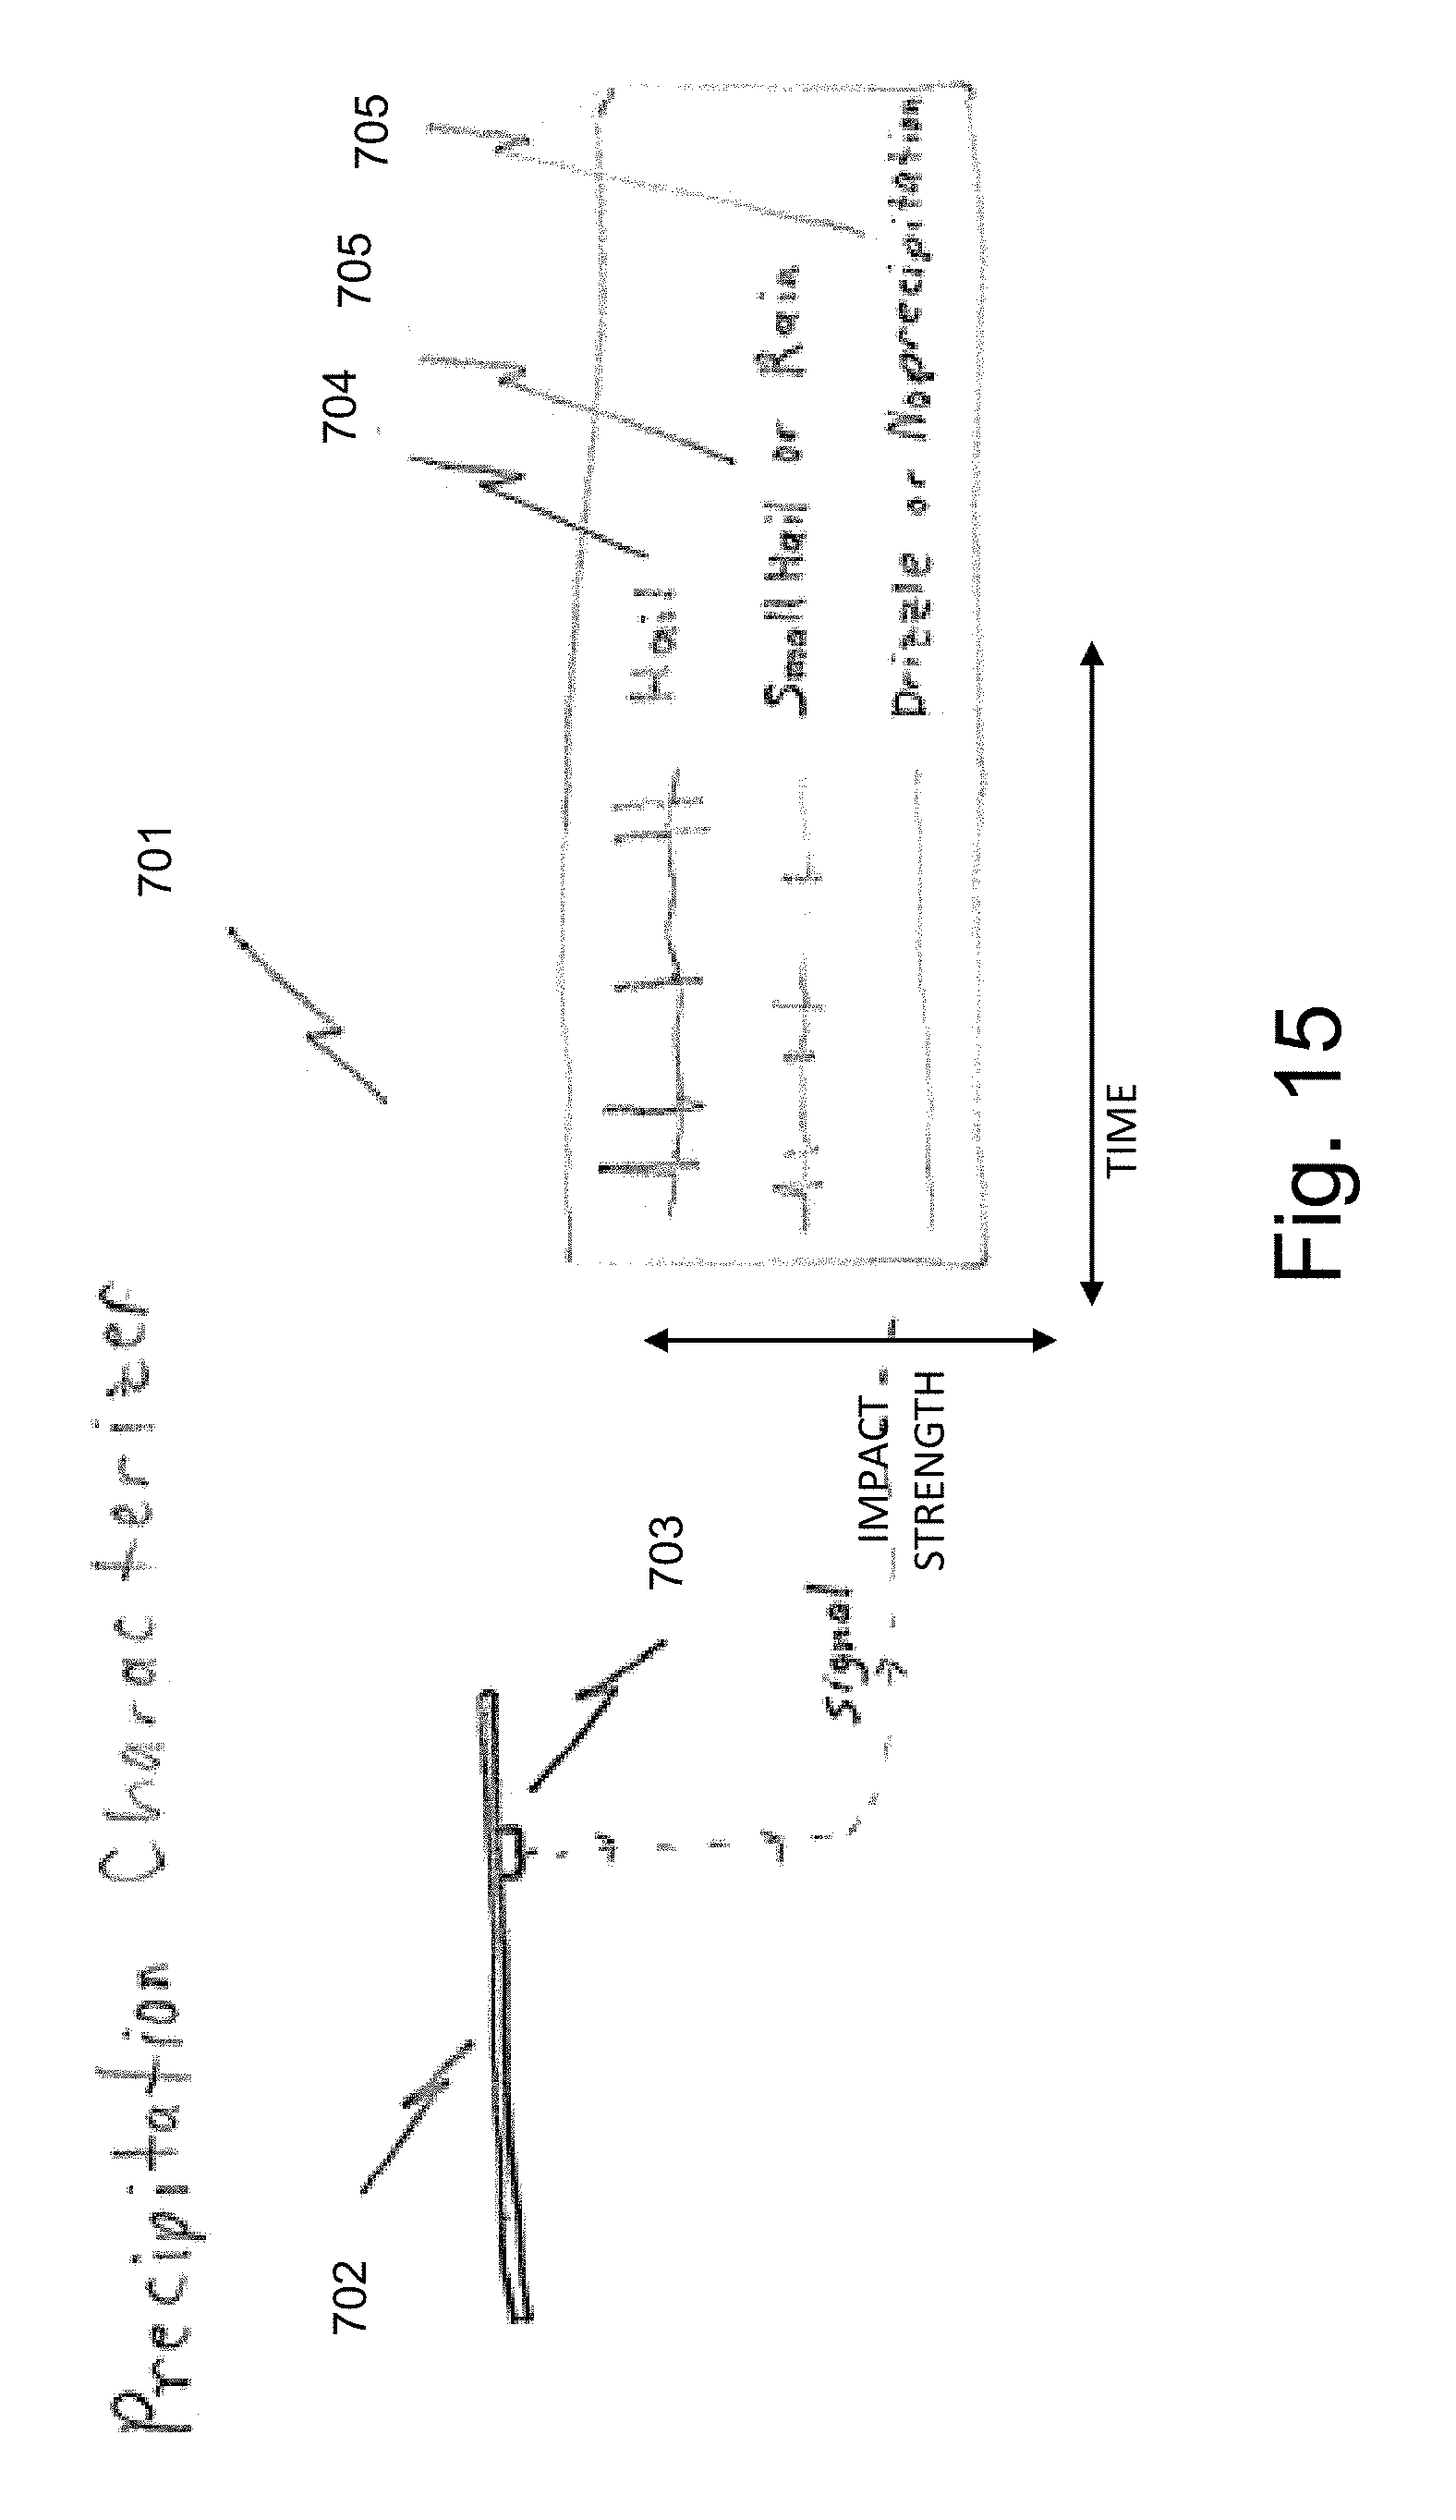 Patent Us 9784887 B1 Opto Thermo Control Relay Switch With Ic 741 Images